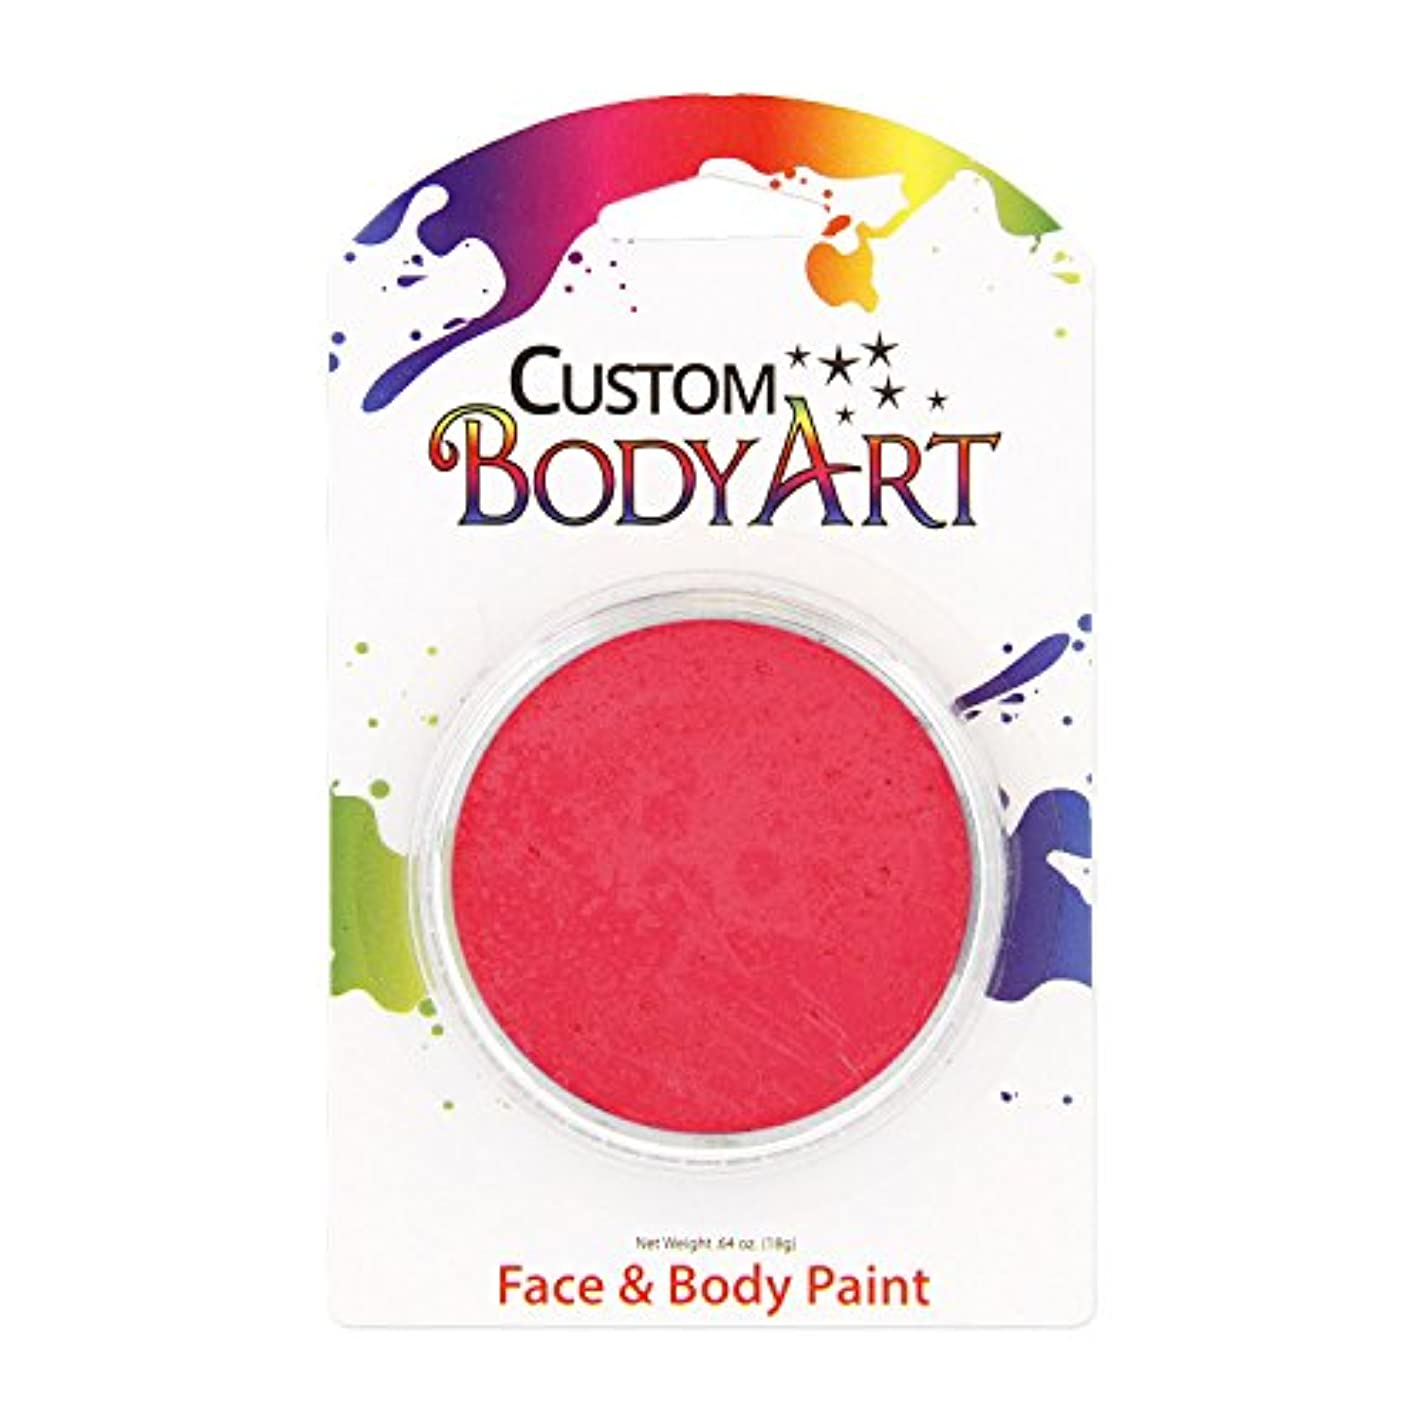 Custom Body Art 18ml Face Paint Fluorescent Color Single Colors 1-each (Pink Fluorescent) - Great for Parties, Halloween & Birthdays